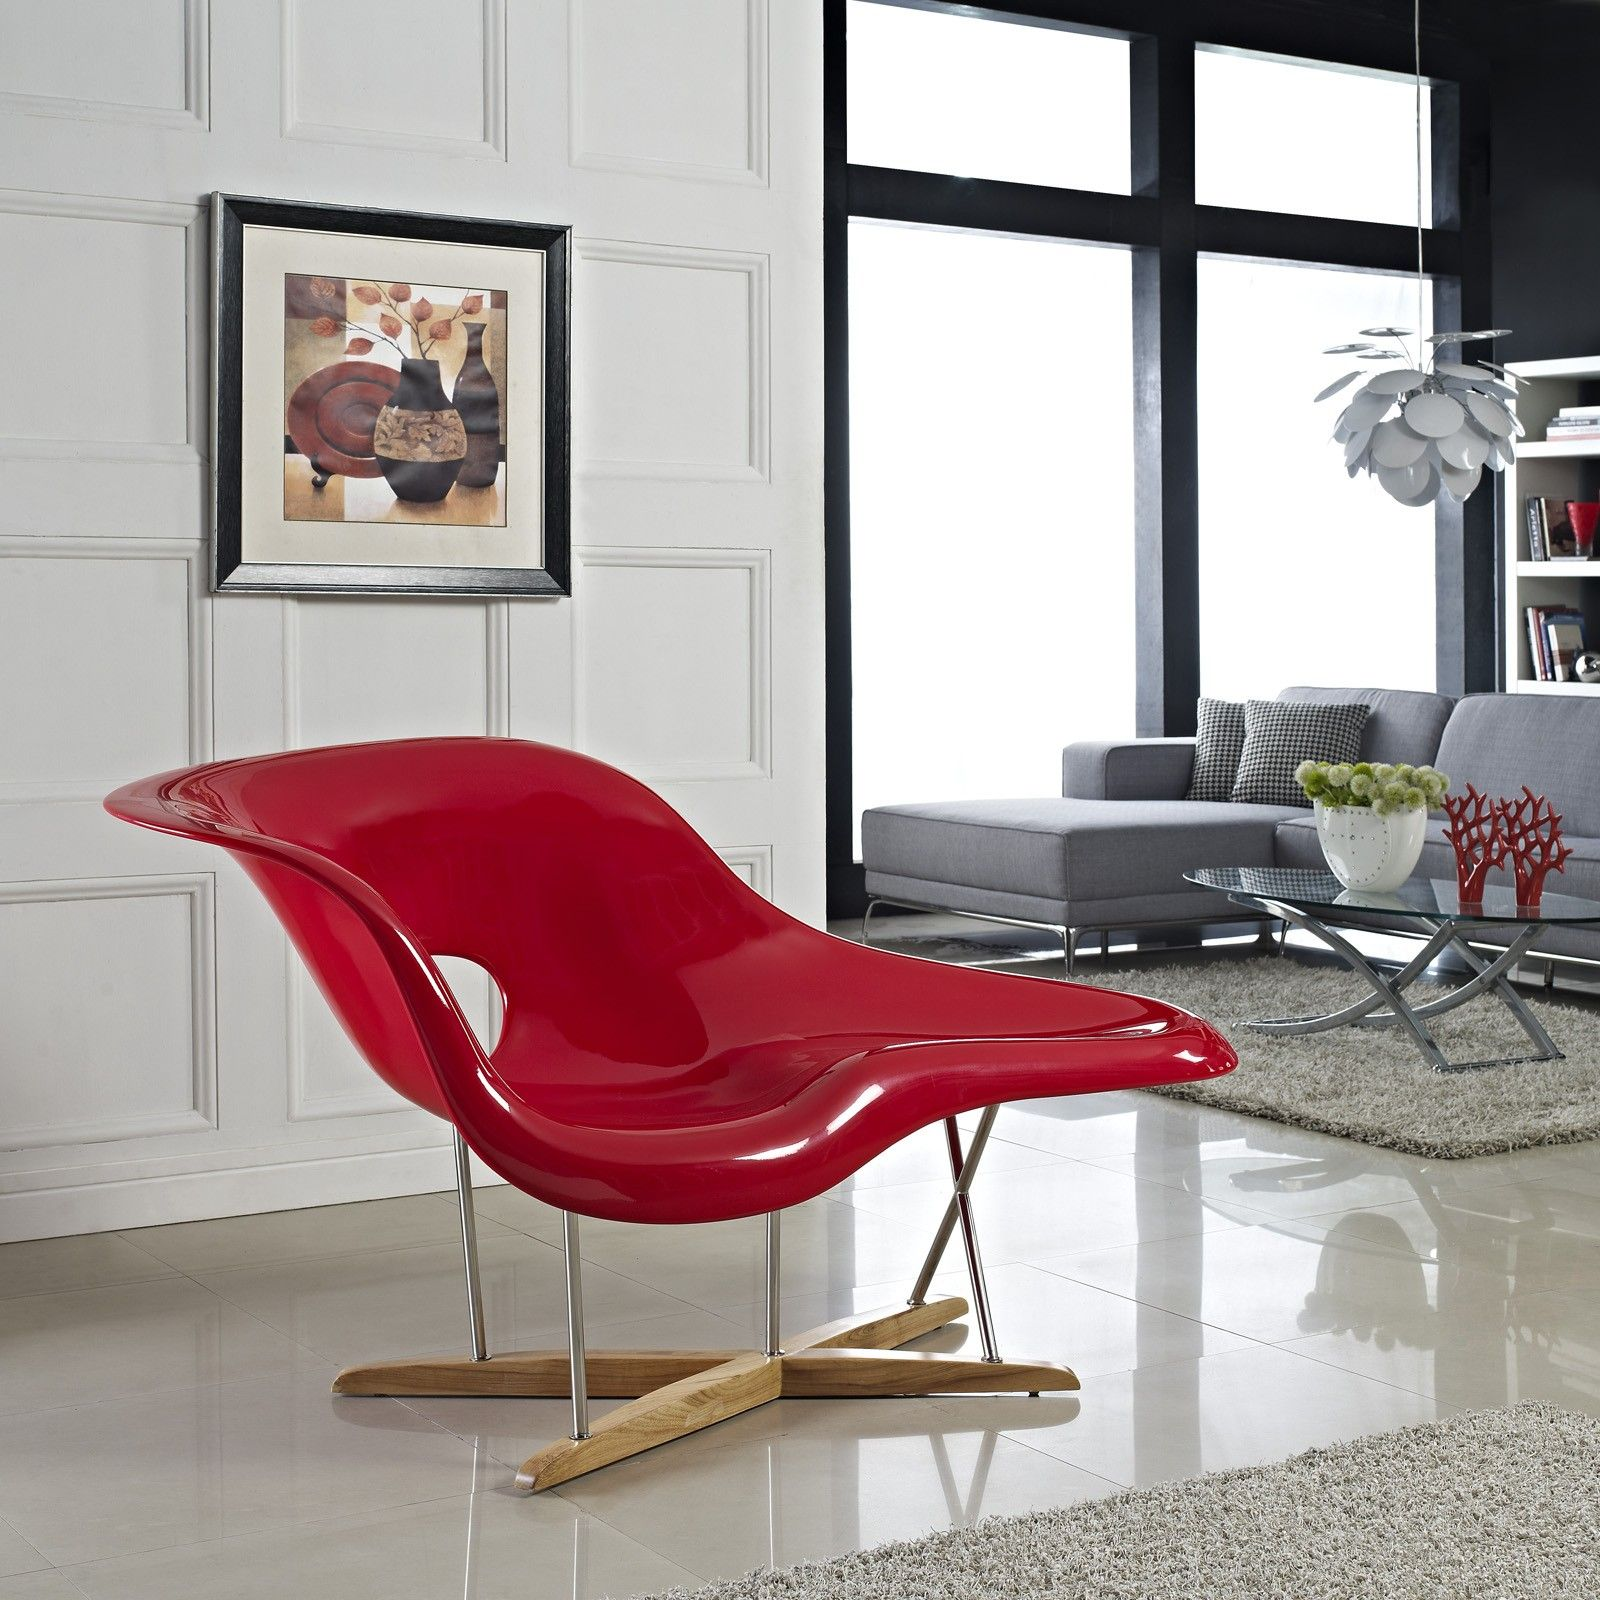 La Chaise Lounge Chair La Chaise Chair By Charles Ray Eames 1948 Basle Chairs